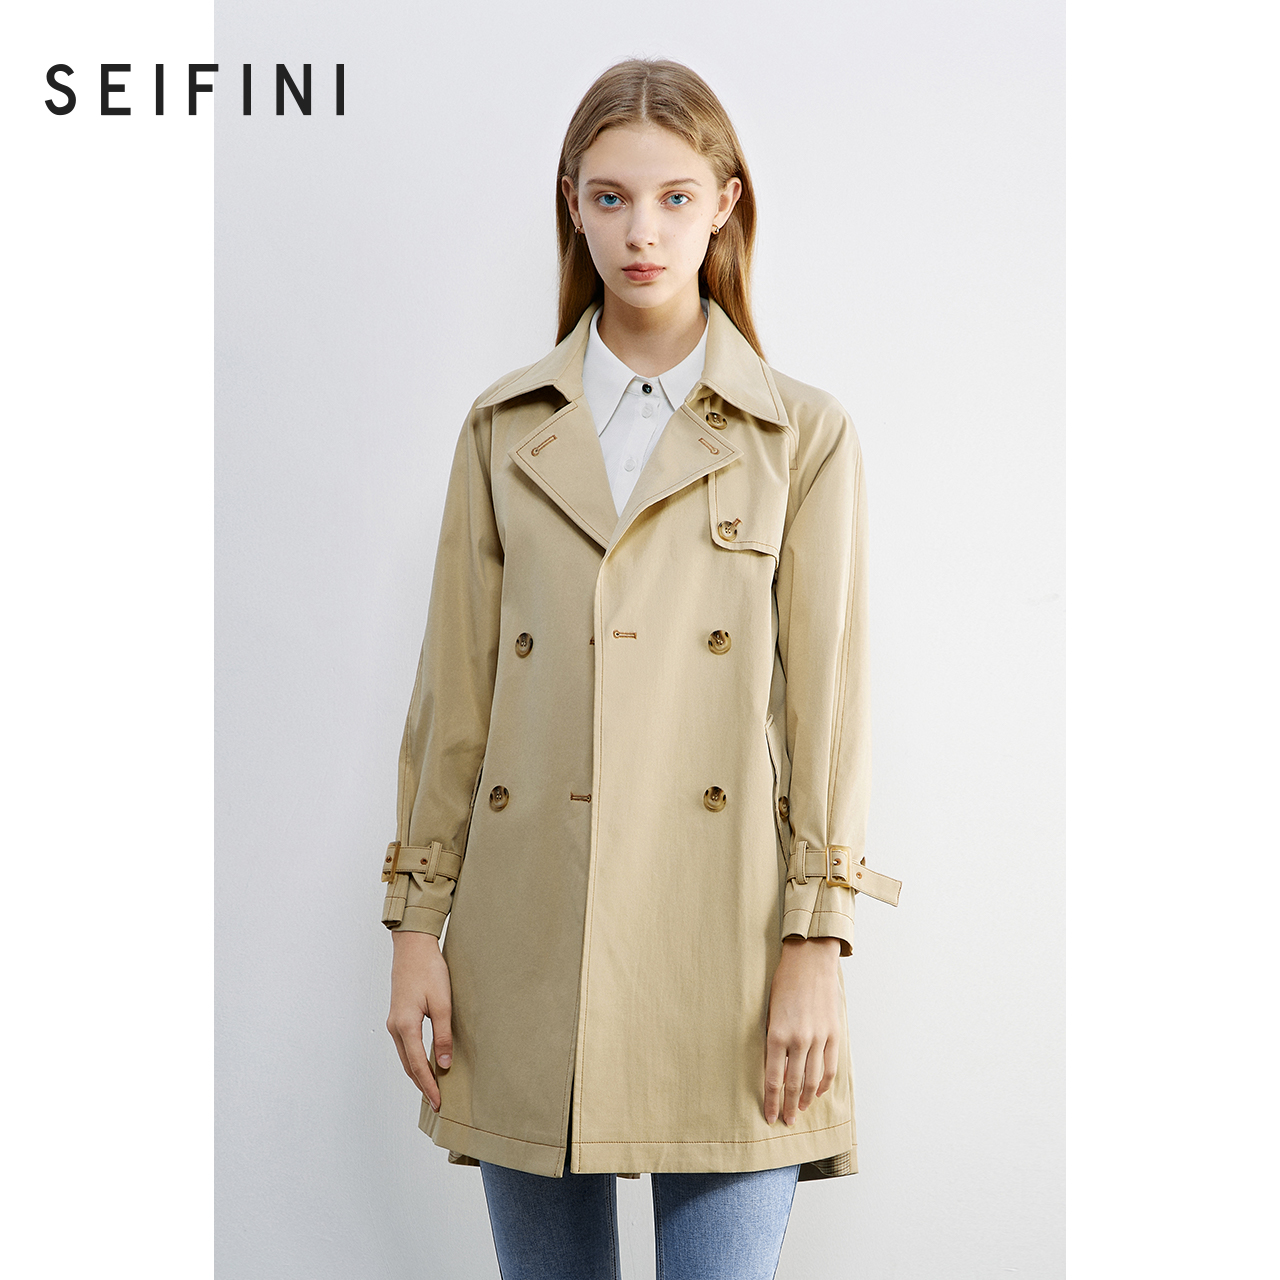 Shopping malls with the same Shifan Li windcoat coat women 2020 new autumn dress medium and long version of casual coat 3B8262141